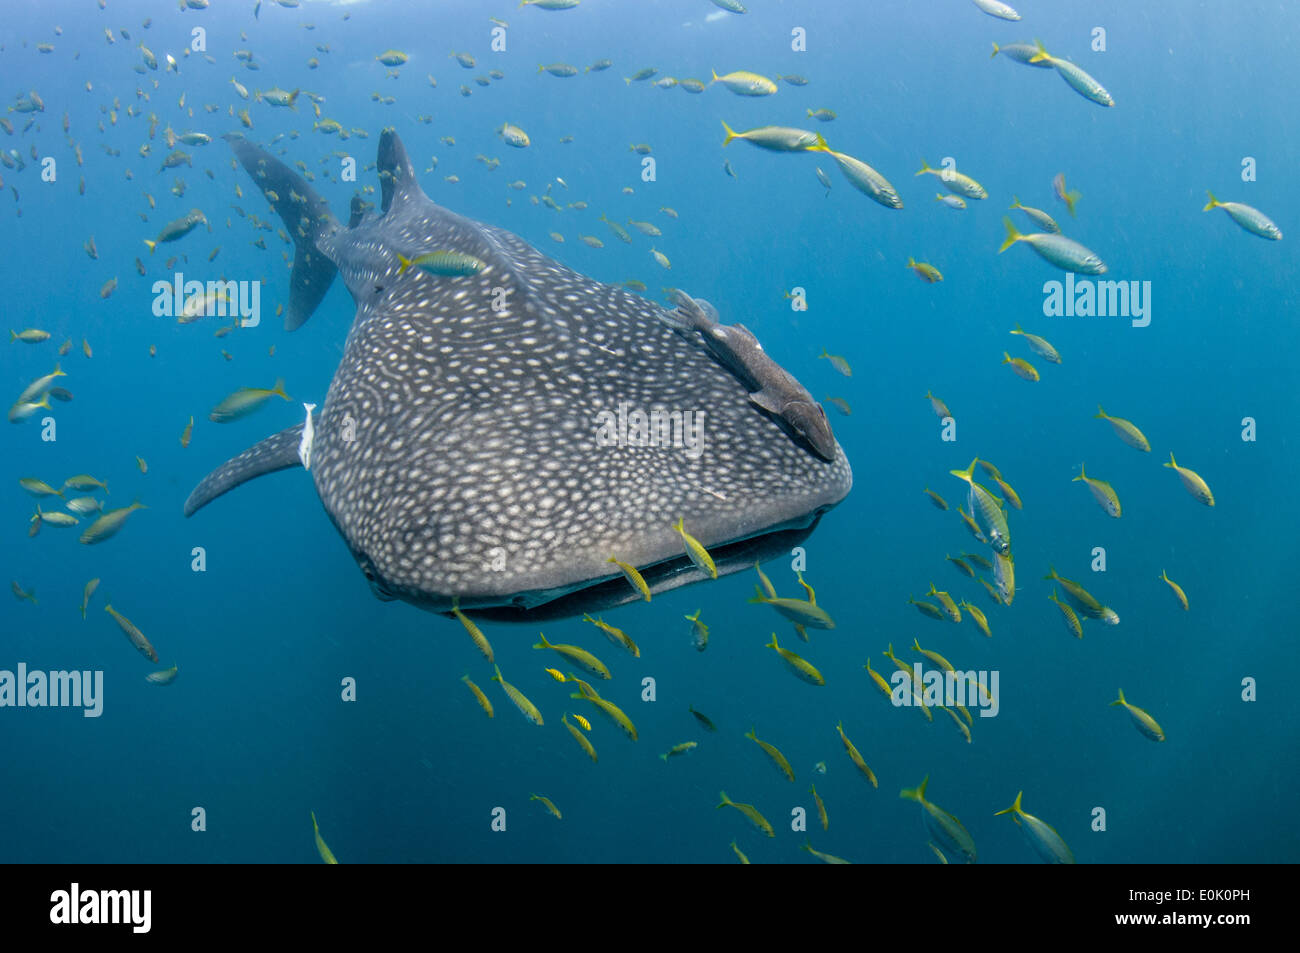 Small Shark Stock Photos Amp Small Shark Stock Images Alamy